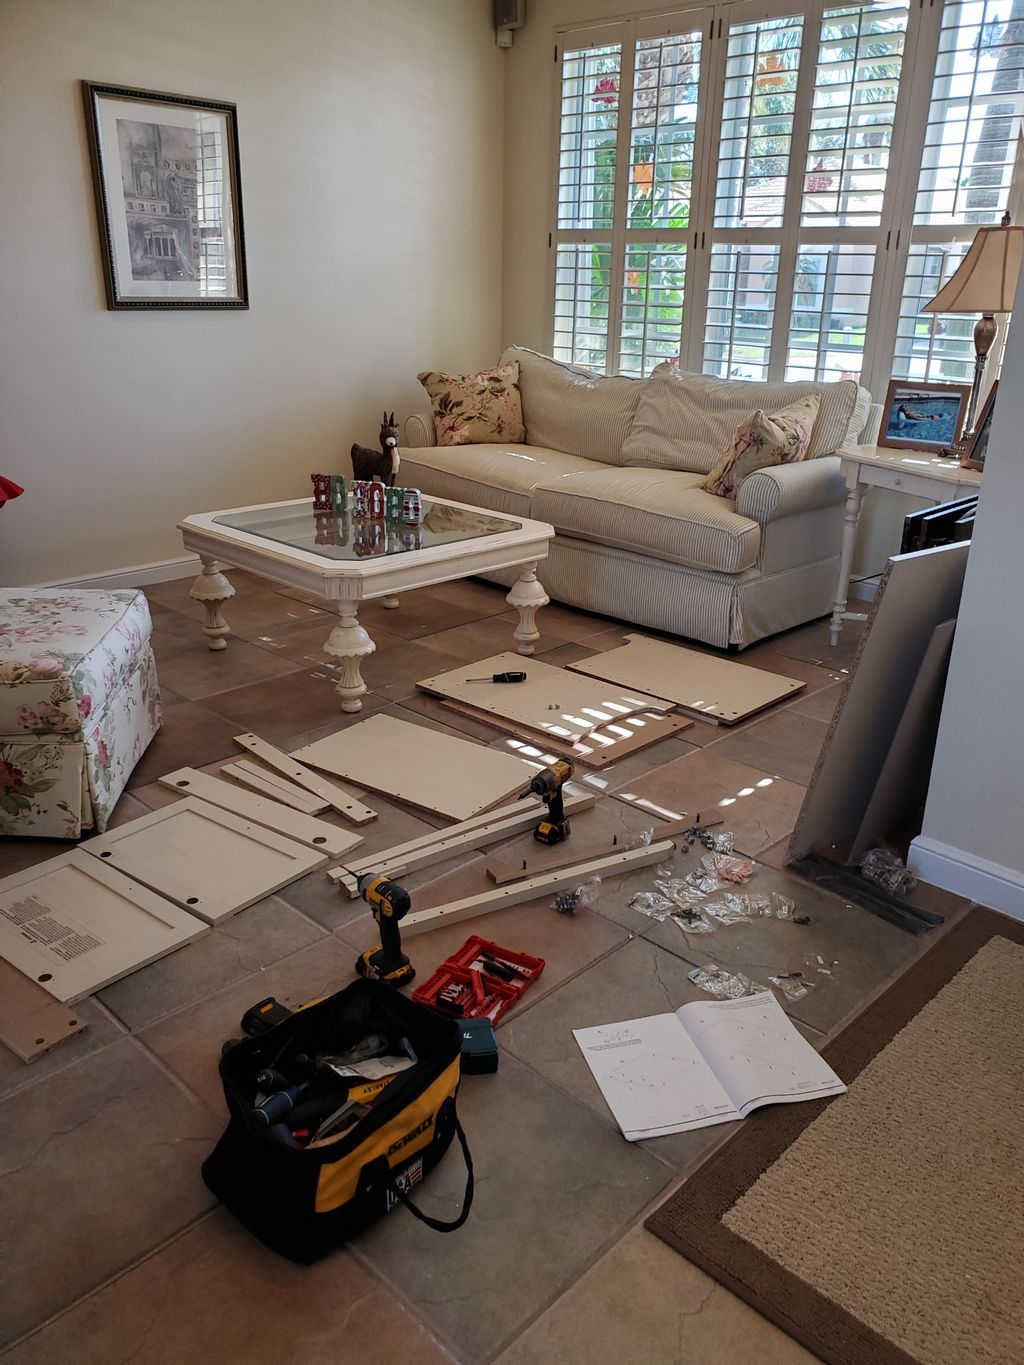 Furniture Assembly - Delray Beach 2019